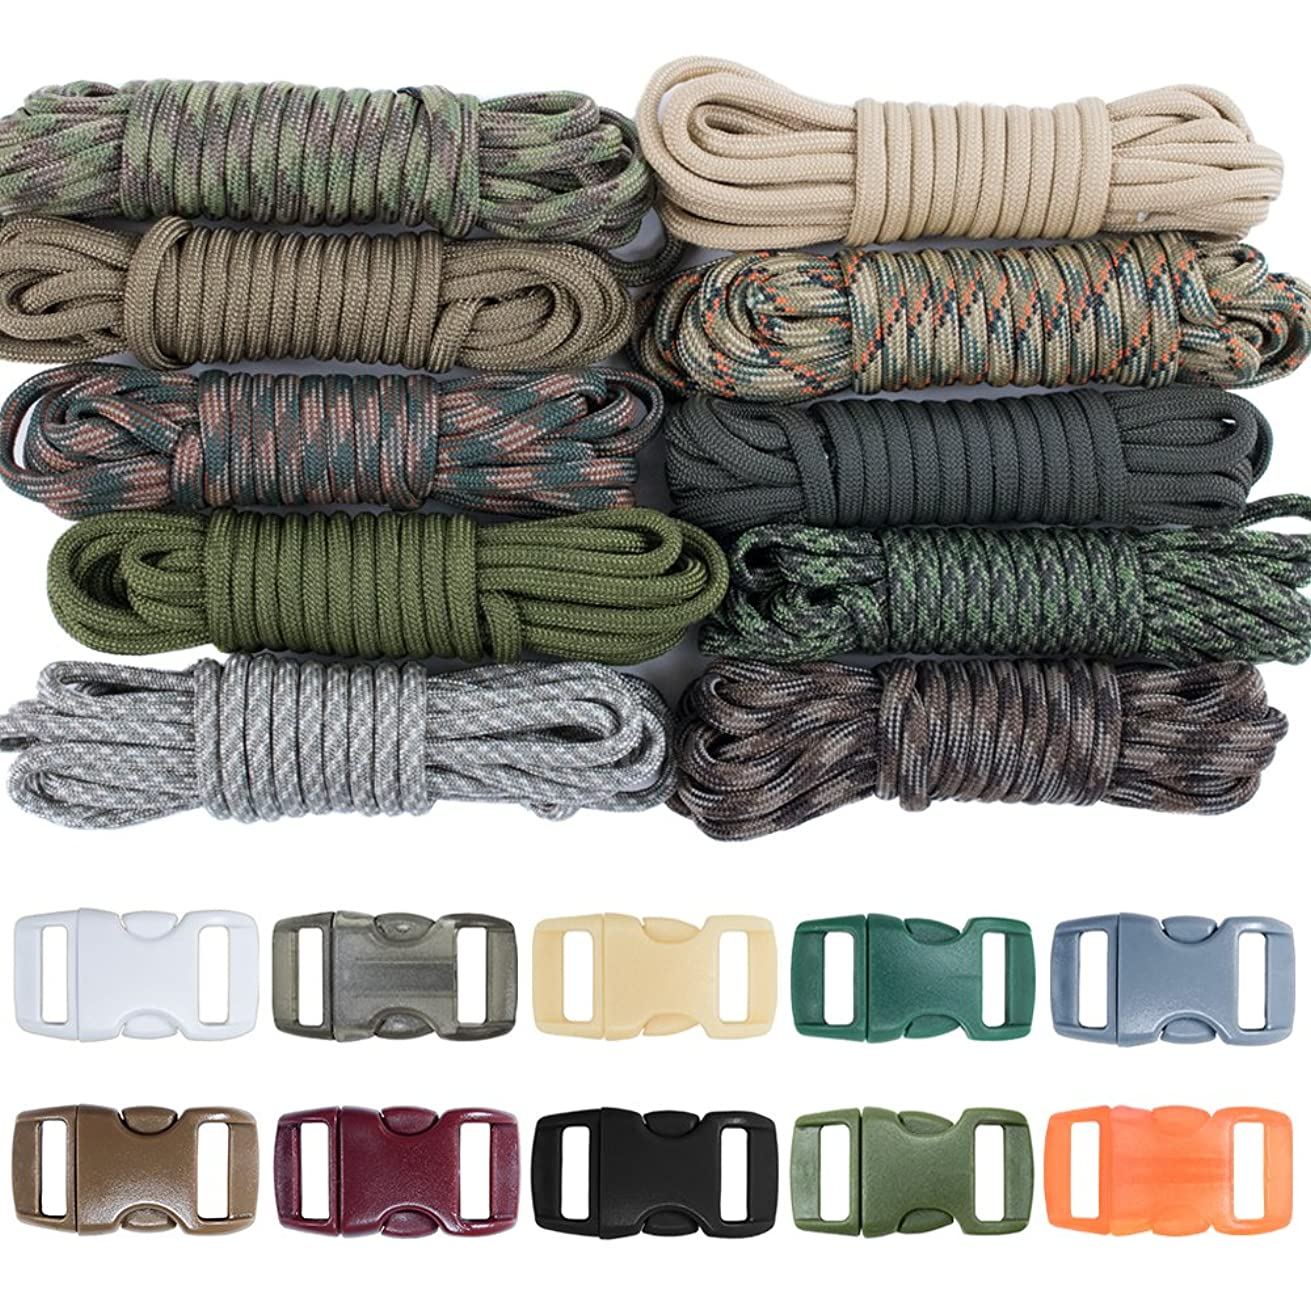 West Coast Paracord Zesty 550lb Paracord Crafting Kit – Random Assortment of Colors and Buckles in 50, 100, Or 200ft Lengths – Make a Variety of Paracord Crafts – Type III Paracord